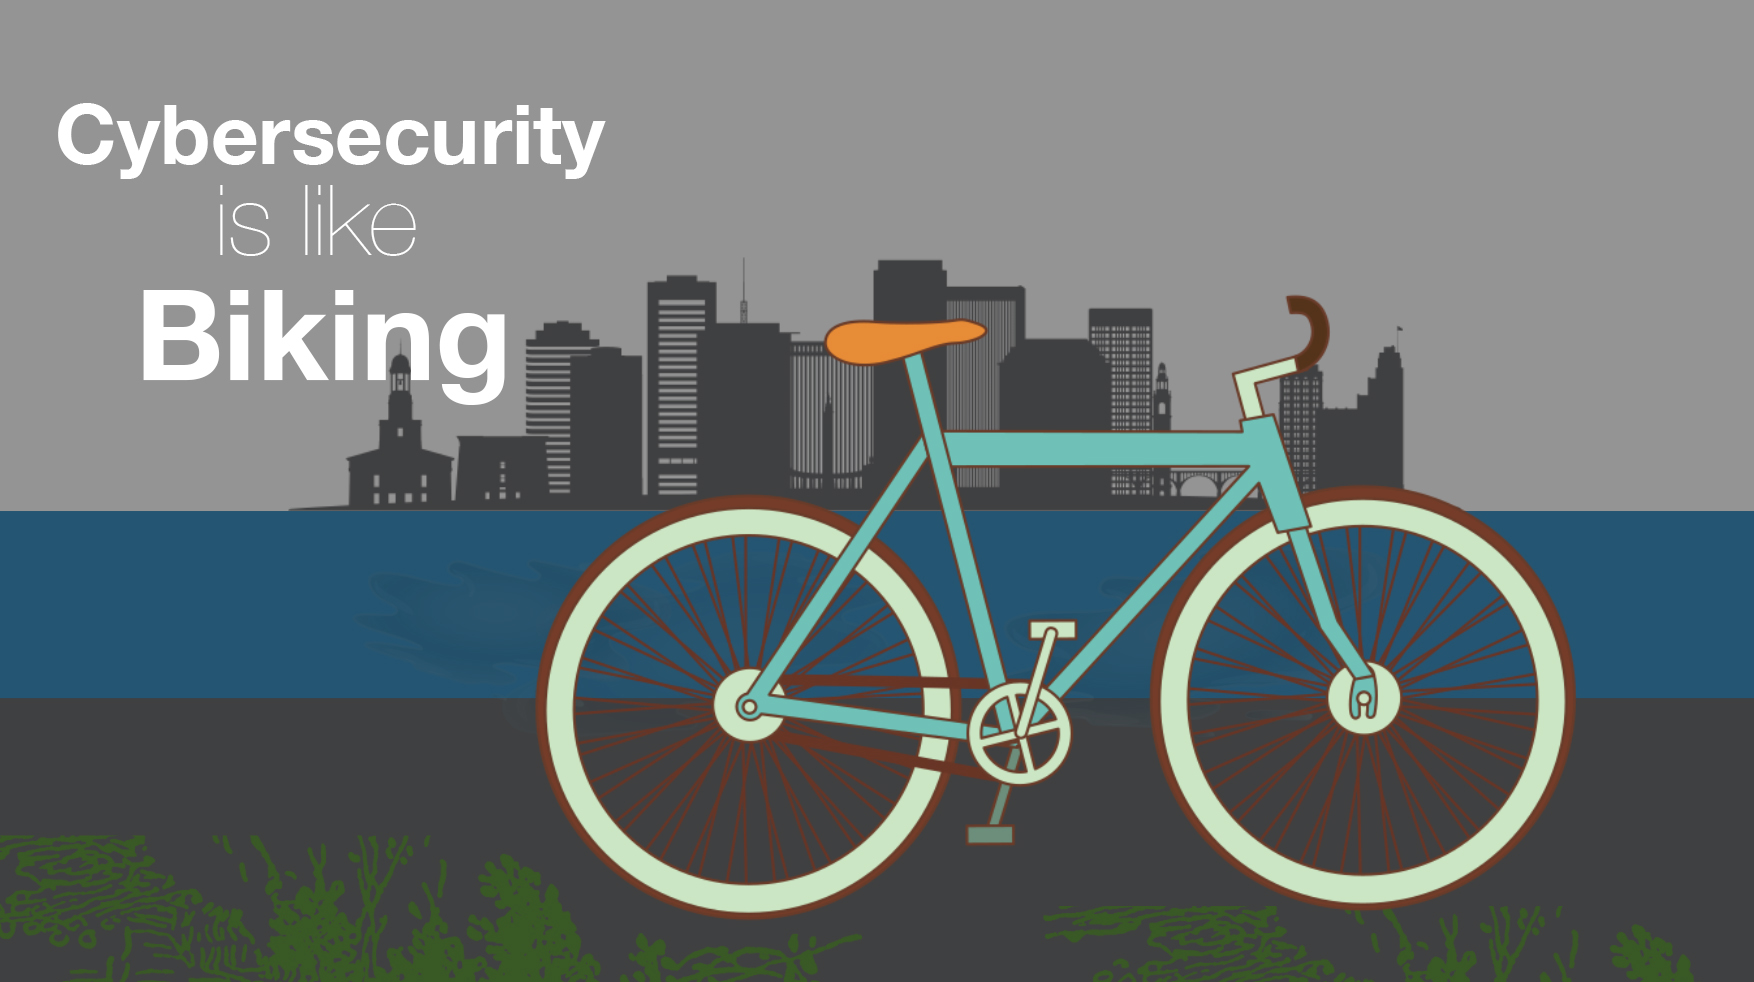 How Cybersecurity is like Biking